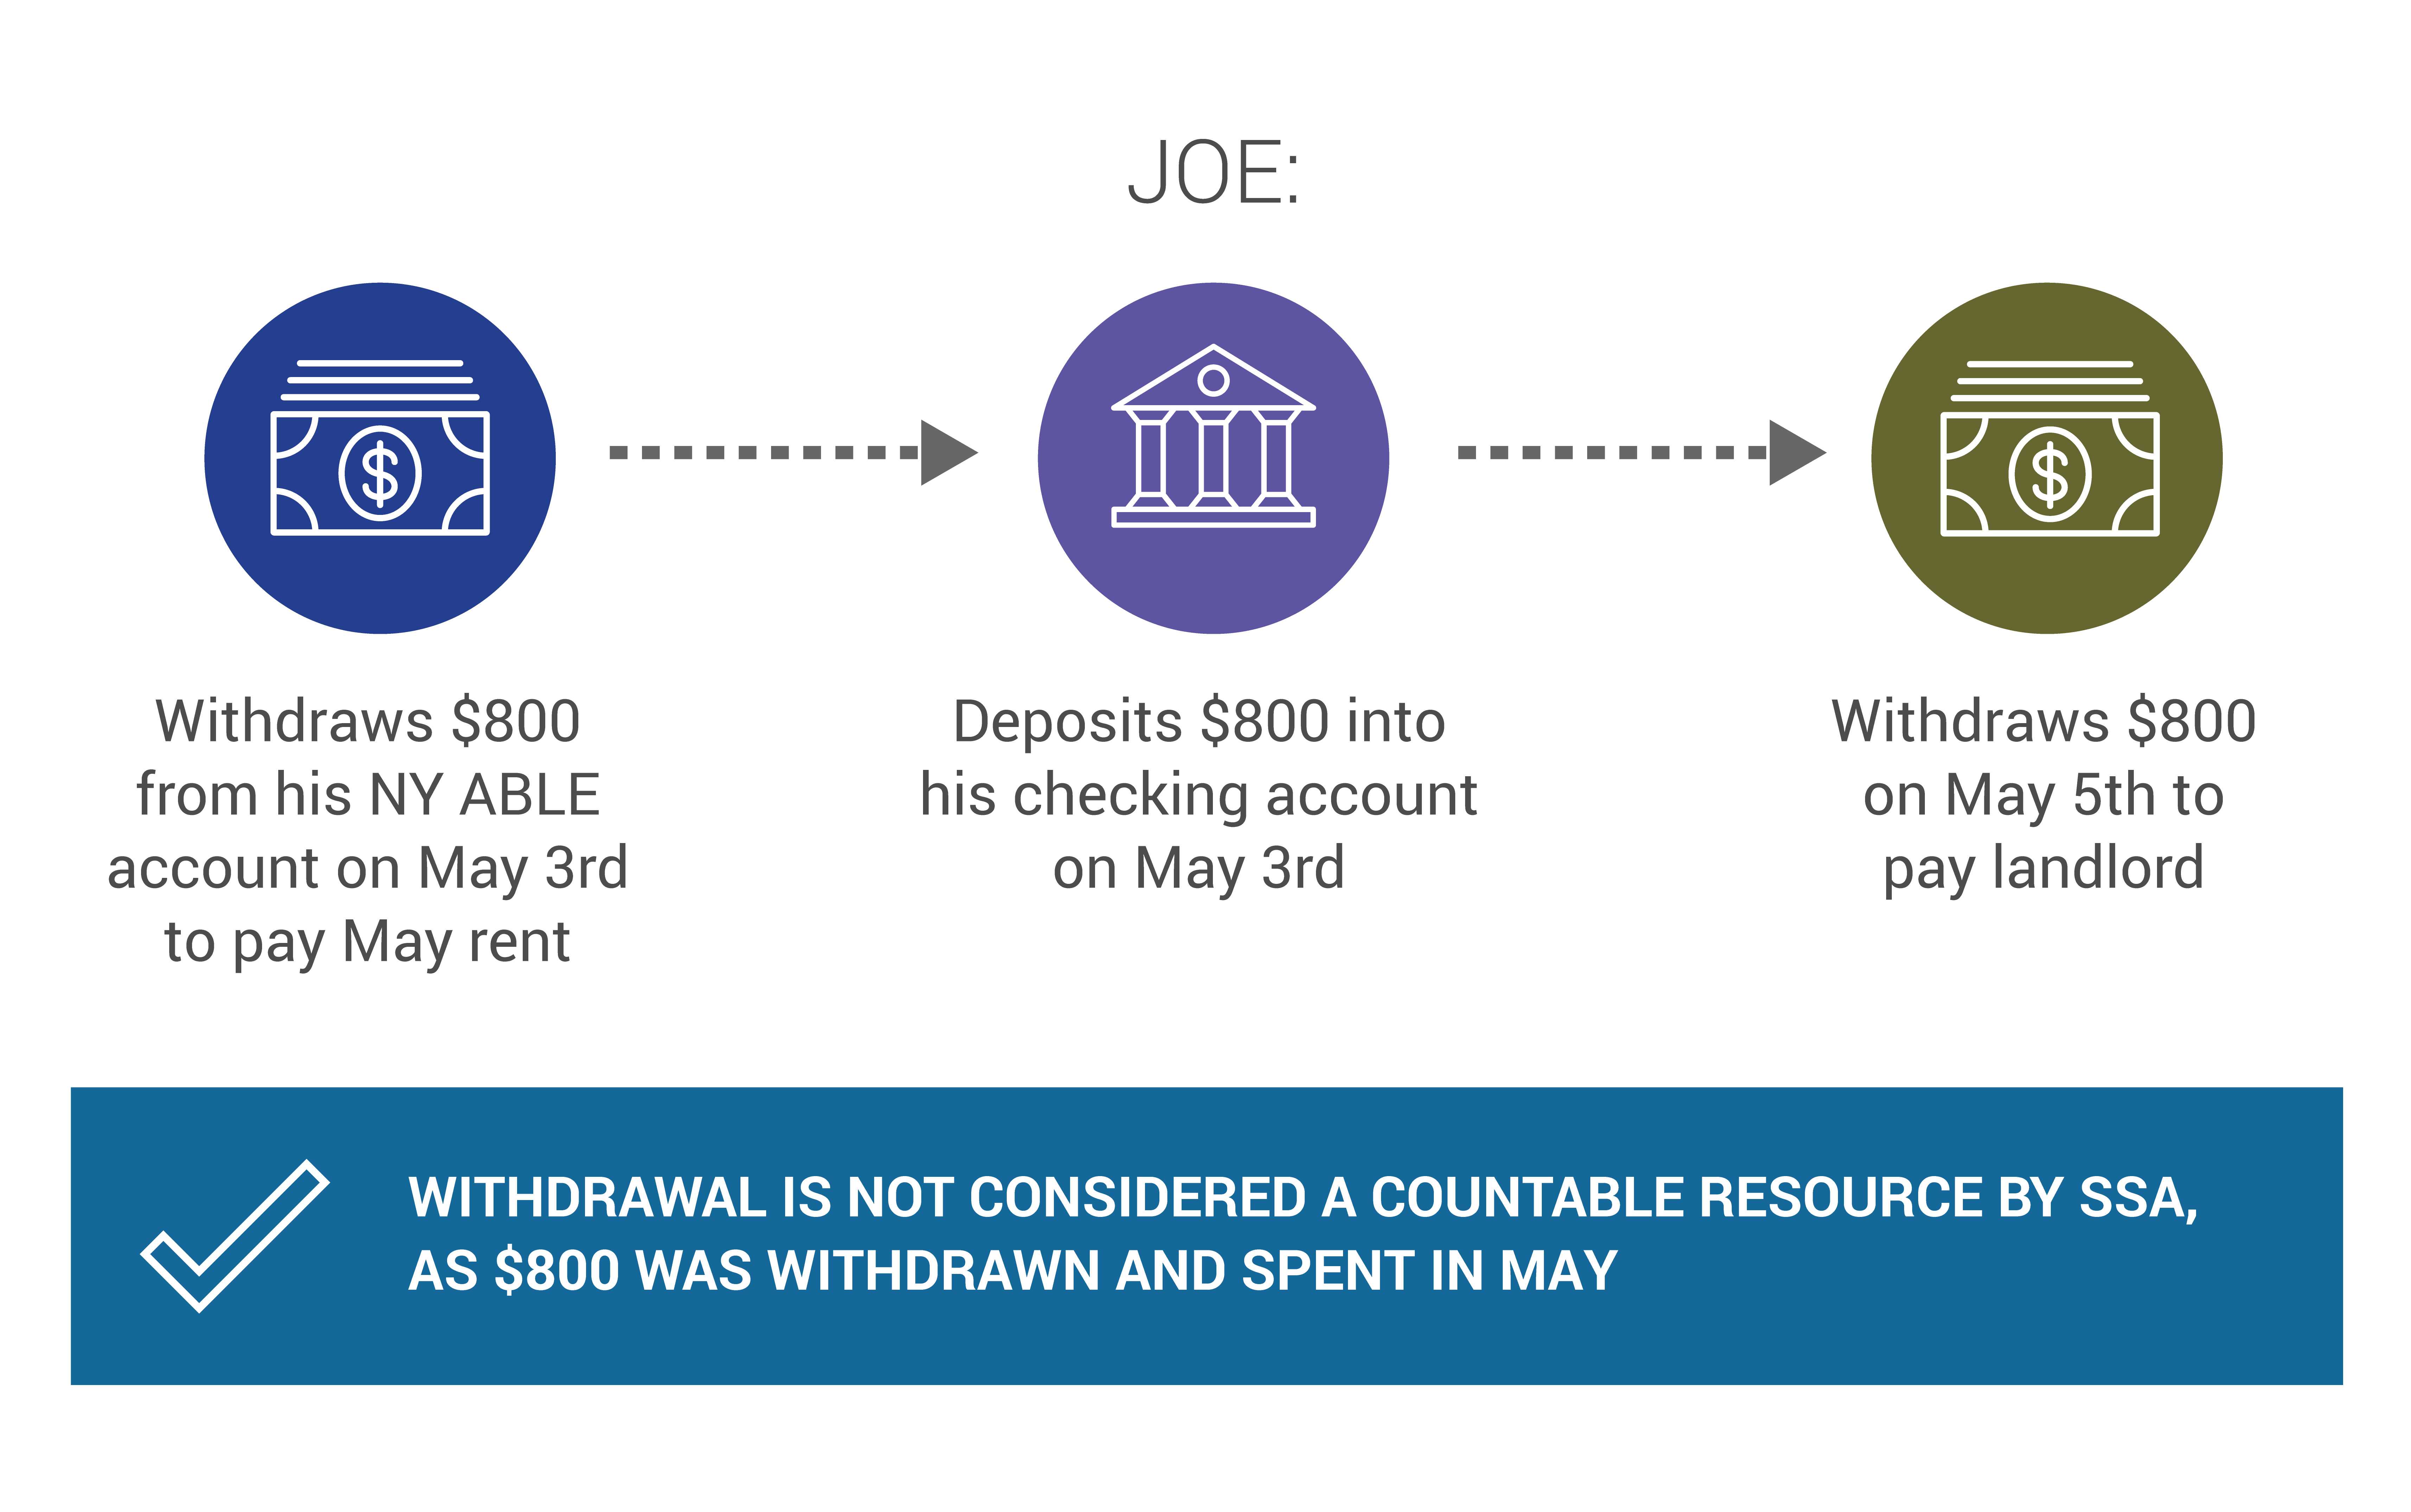 """Joe's scenario begins with his withdrawal of $800 from his NY ABLE account on May 3rd to pay May rent. Joe then deposits $800 into his checking account on May 3rd. Finally, he withdraws $800 on May 5th to pay his landlord. Big blue """"checkmark"""" icon signifies that this is NOT considered a countable resource by SSA, as $800 was withdrawn and spent in May."""